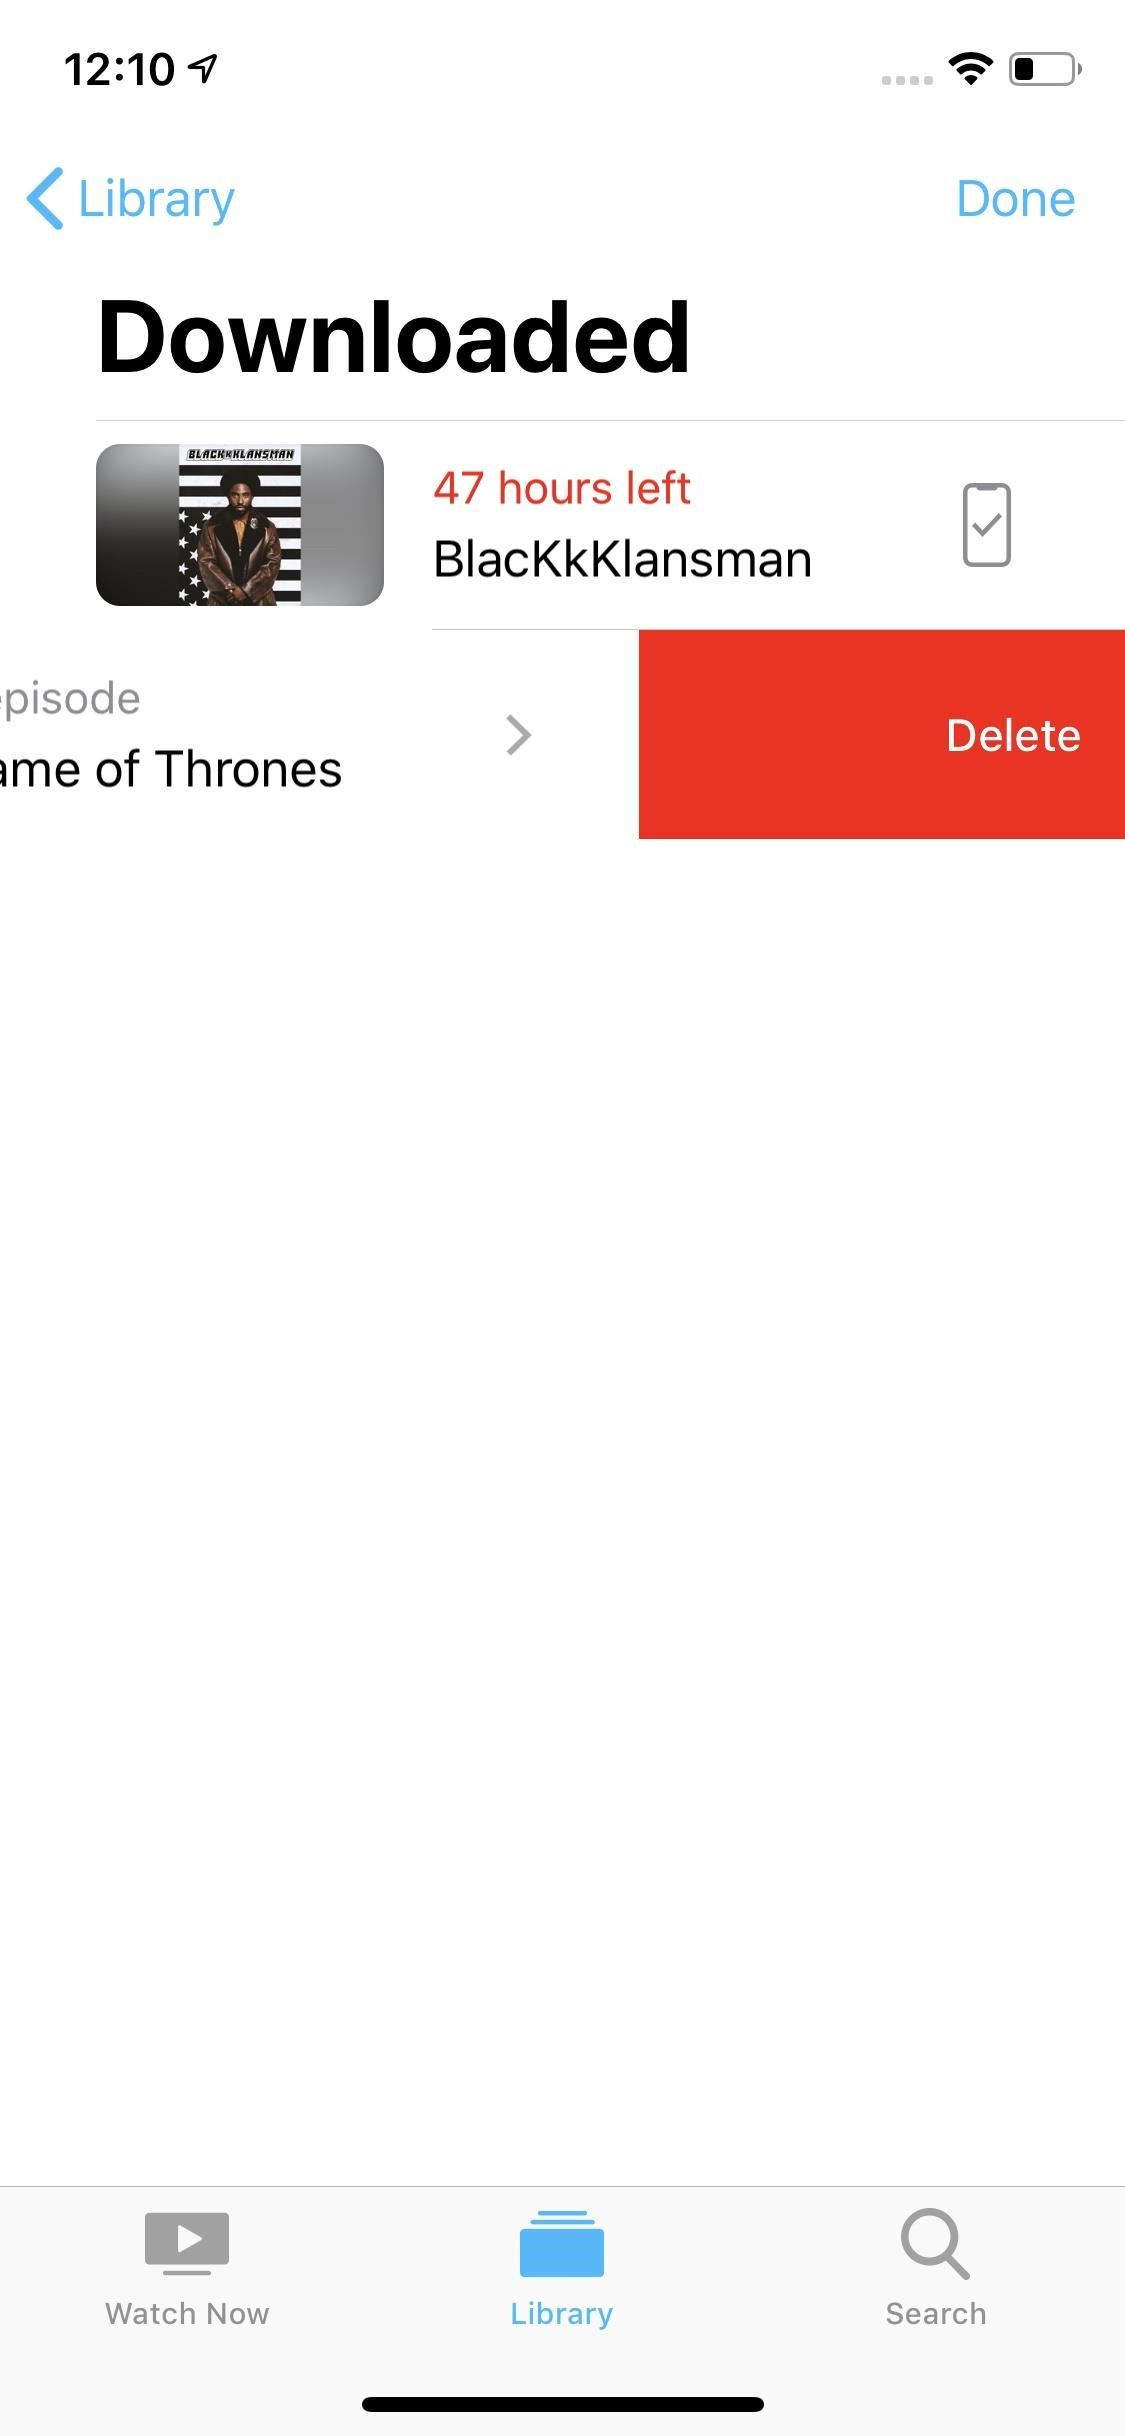 How to Watch HBO Offline on Your iPhone for 'Game of Thrones' Anytime